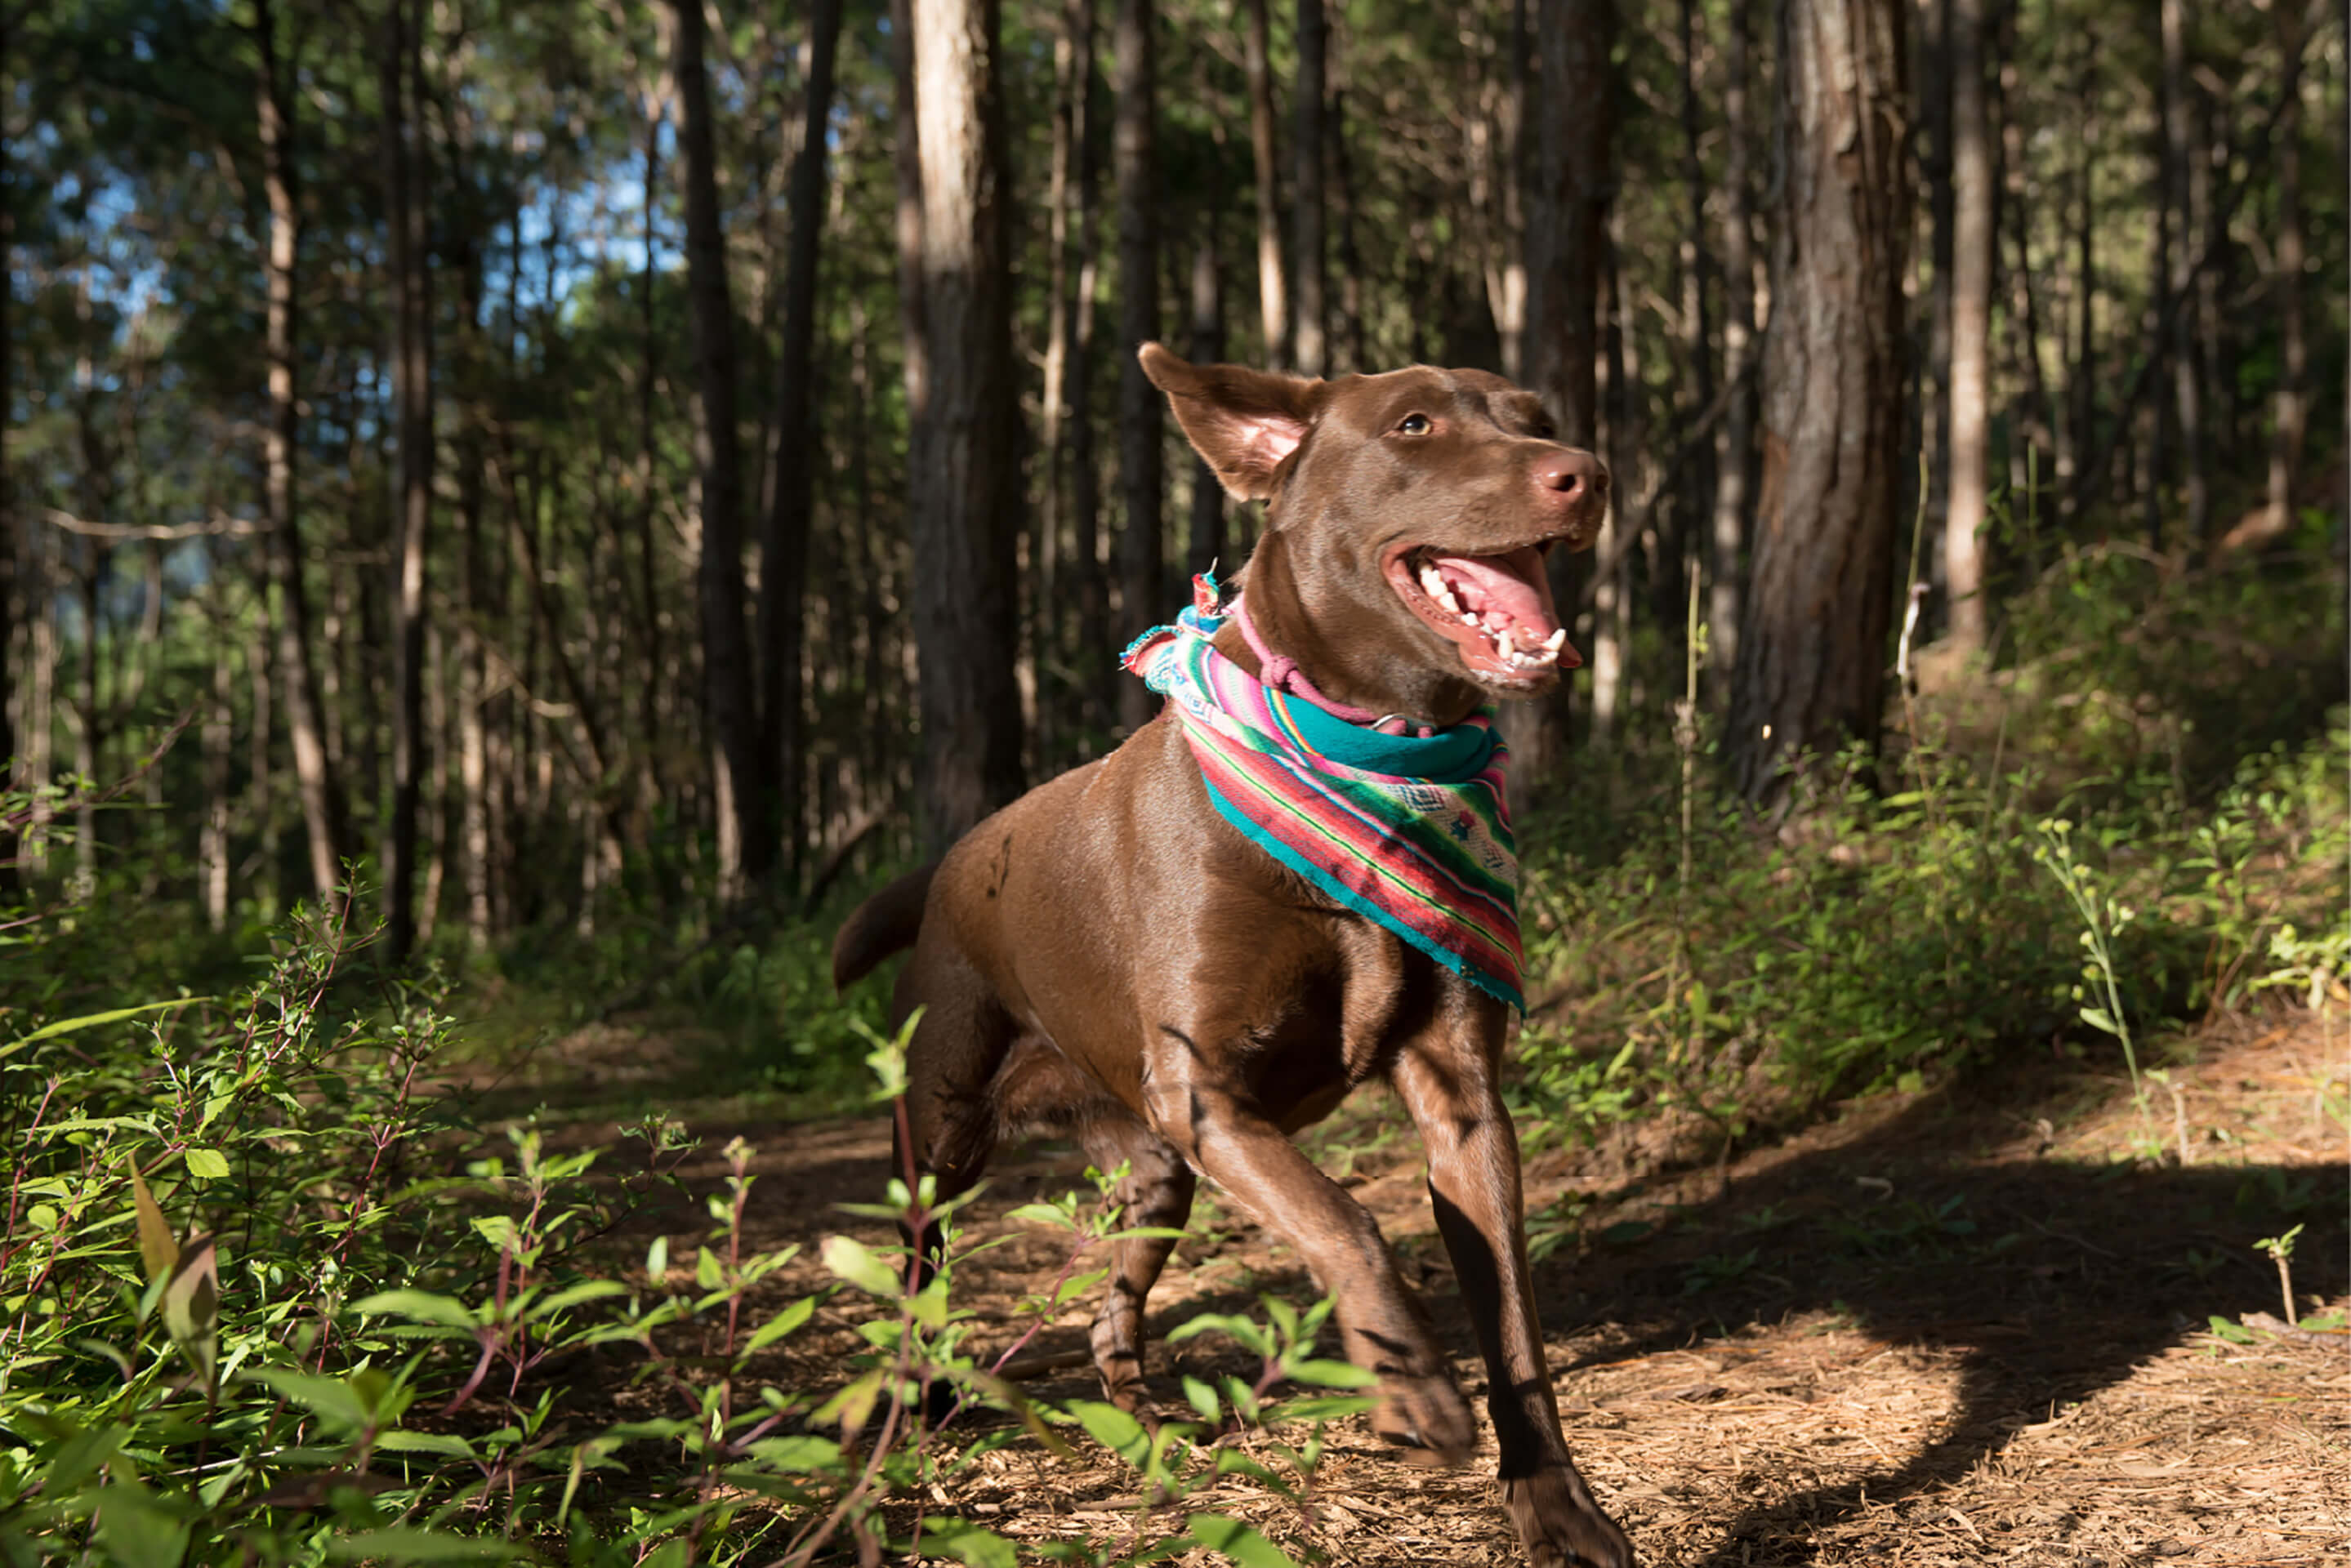 The two-day event will feature six trails of varied lengths and difficulties, including the Canicross Run: a 10km trail for runners and their dogs.